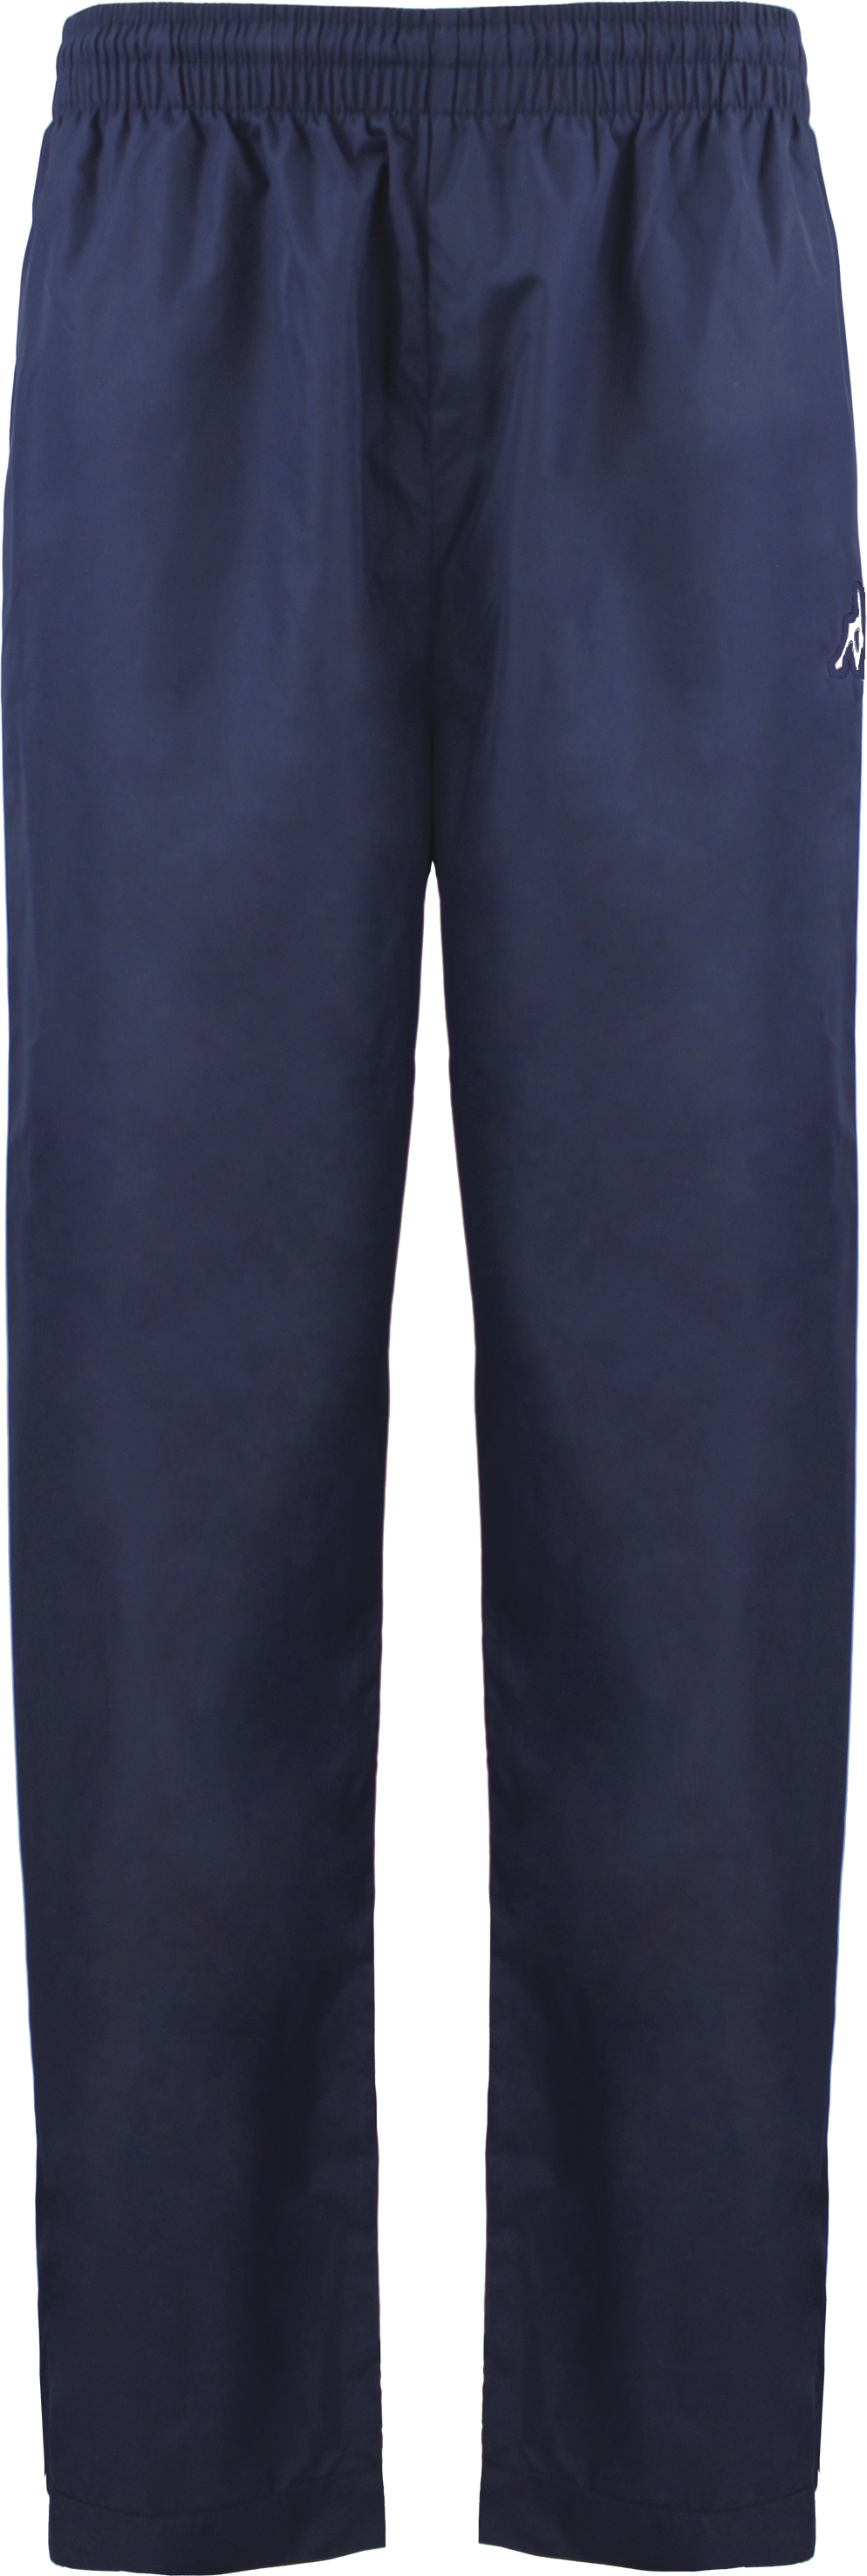 Foggia 2 Winter Trouser